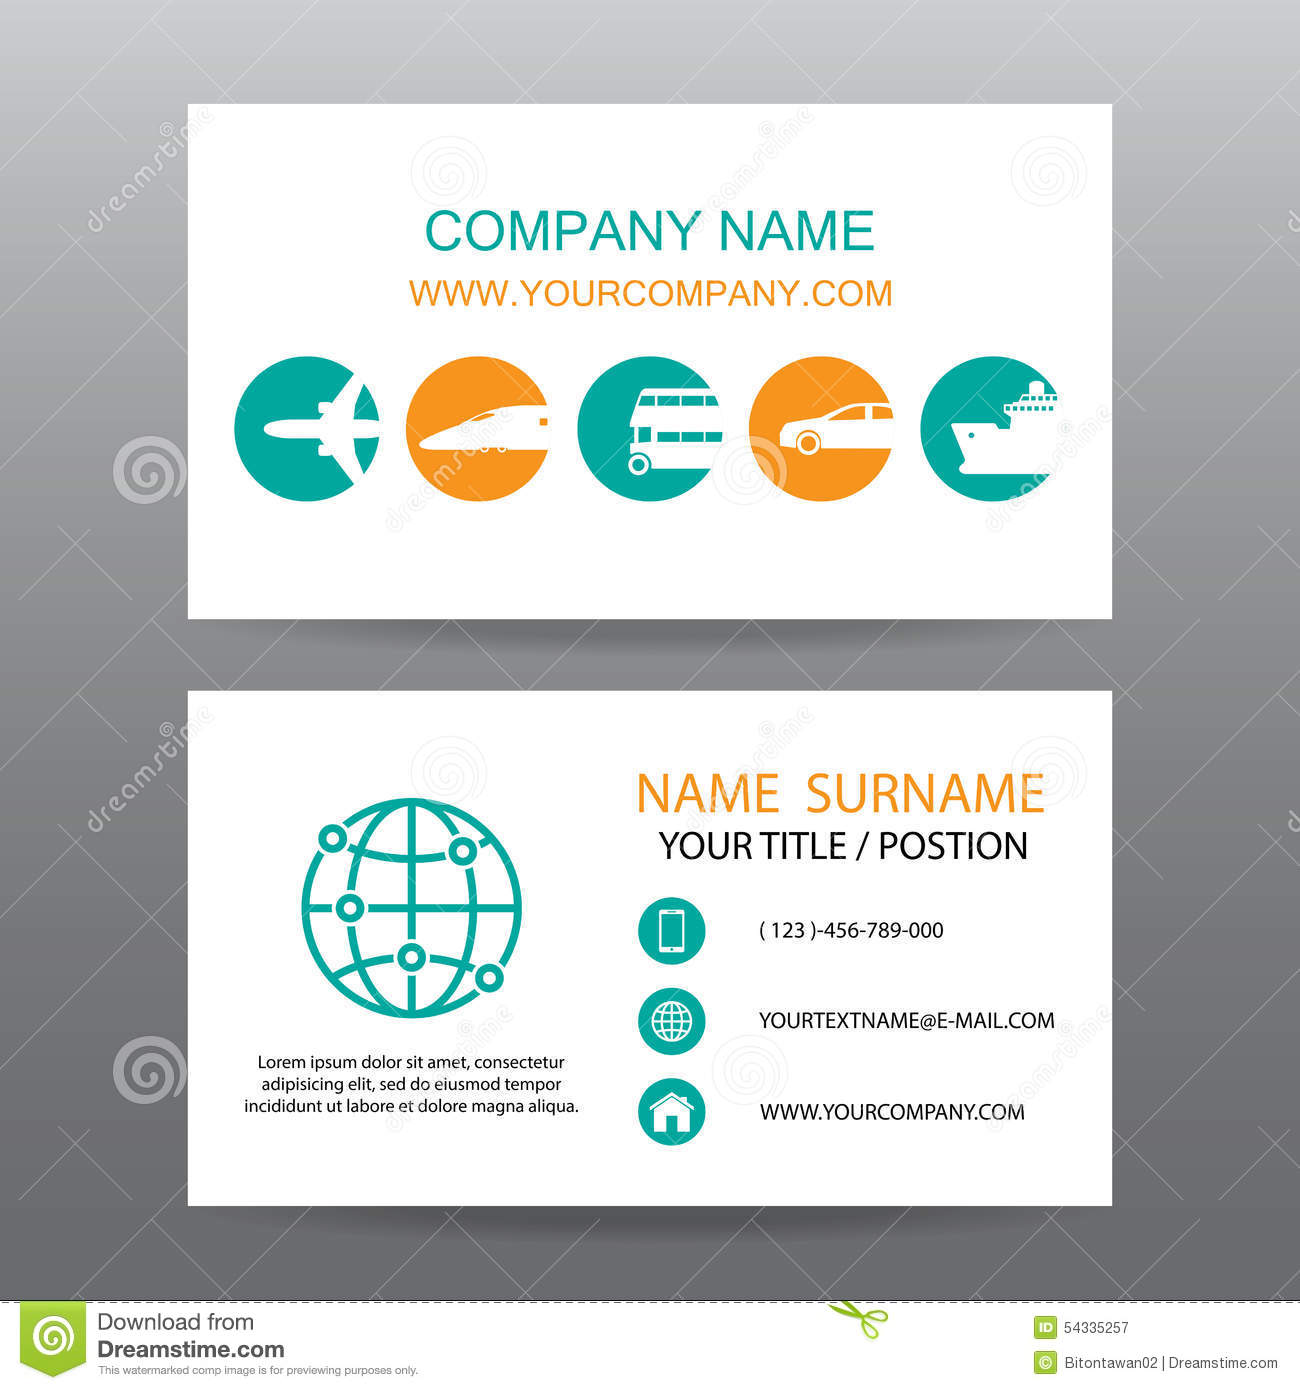 Business card design for taxi companies stock vector illustration business card vector backgroundtour companies stock illustration colourmoves